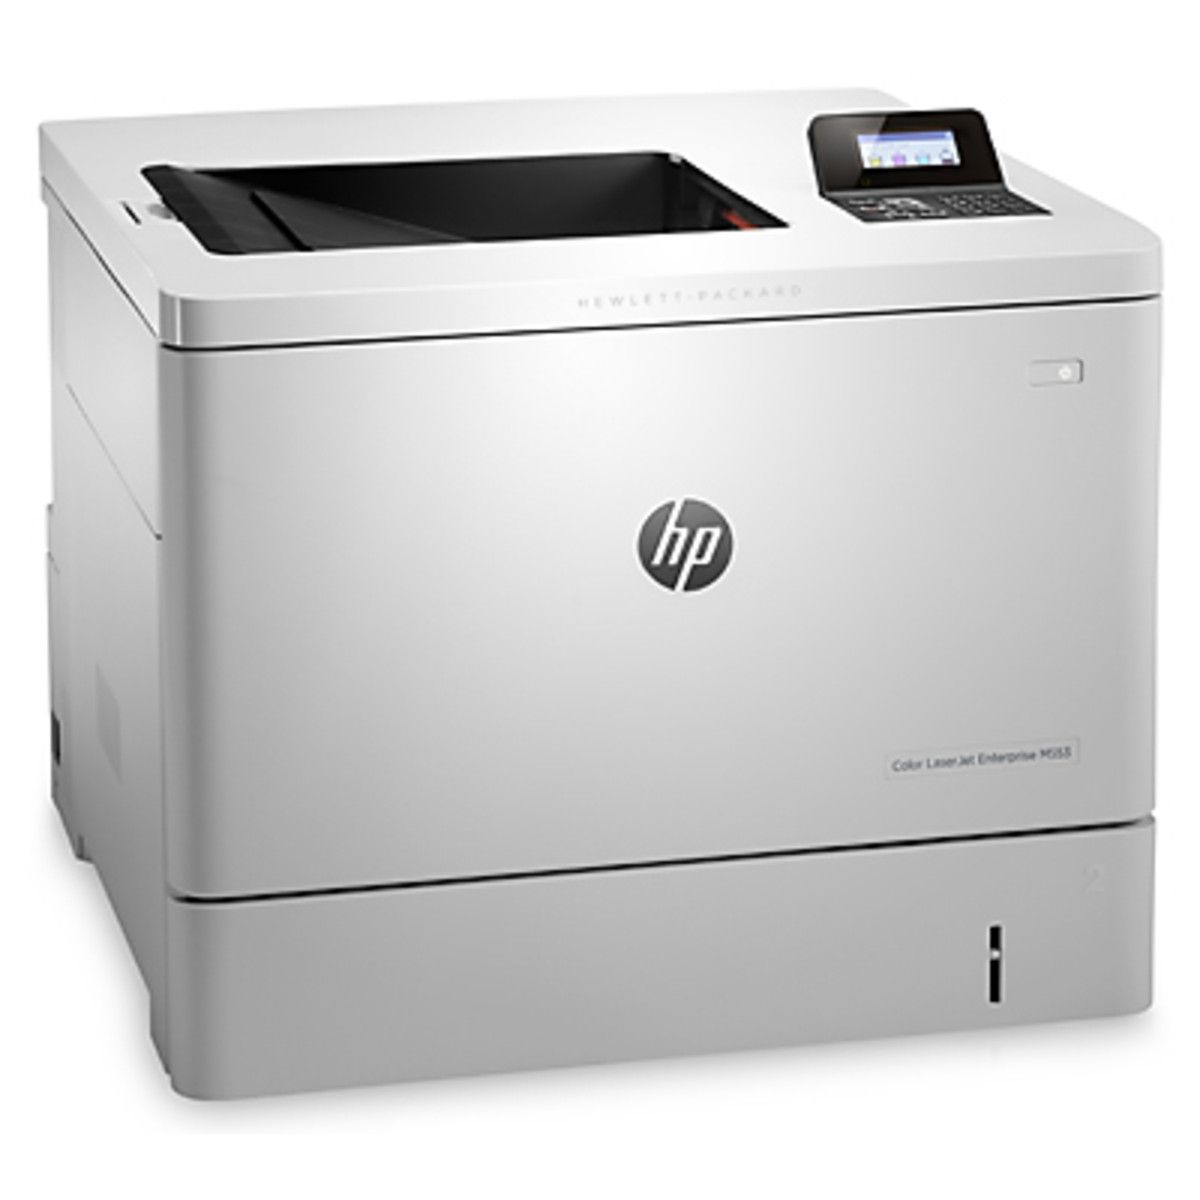 HP Laserjet M553dn Laser Printer